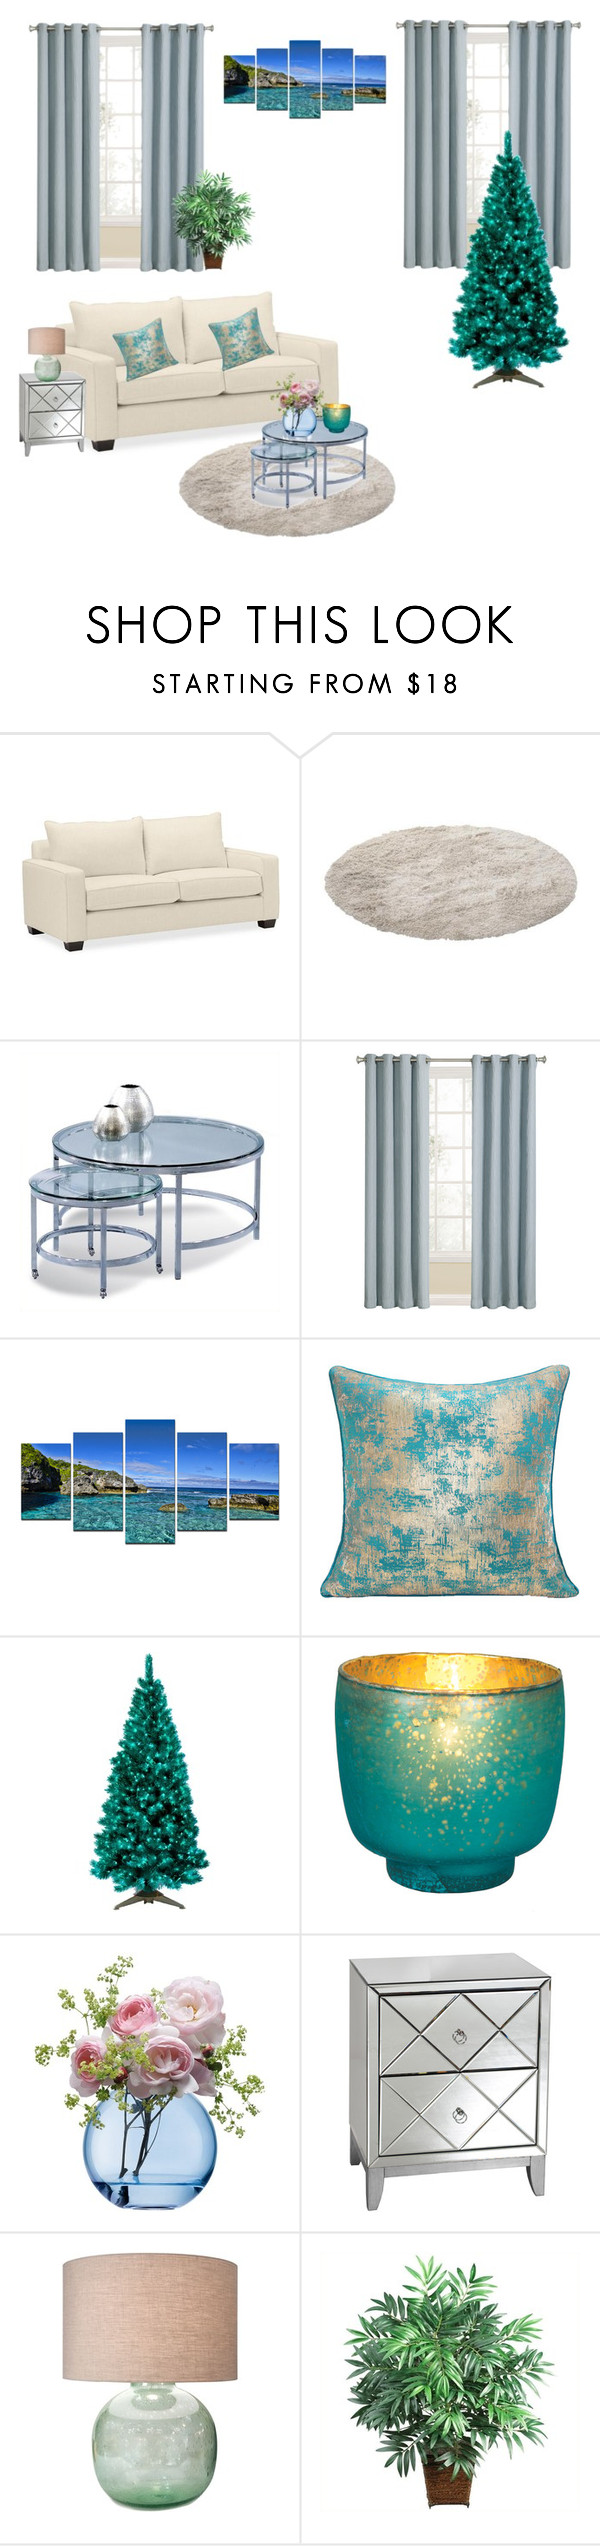 """""""Untitled #482"""" by xxxxxxxxxx0 ❤ liked on Polyvore featuring interior, interiors, interior design, home, home decor, interior decorating, Pottery Barn, Basset Mirror Company, Ready2hangart and General Foam"""